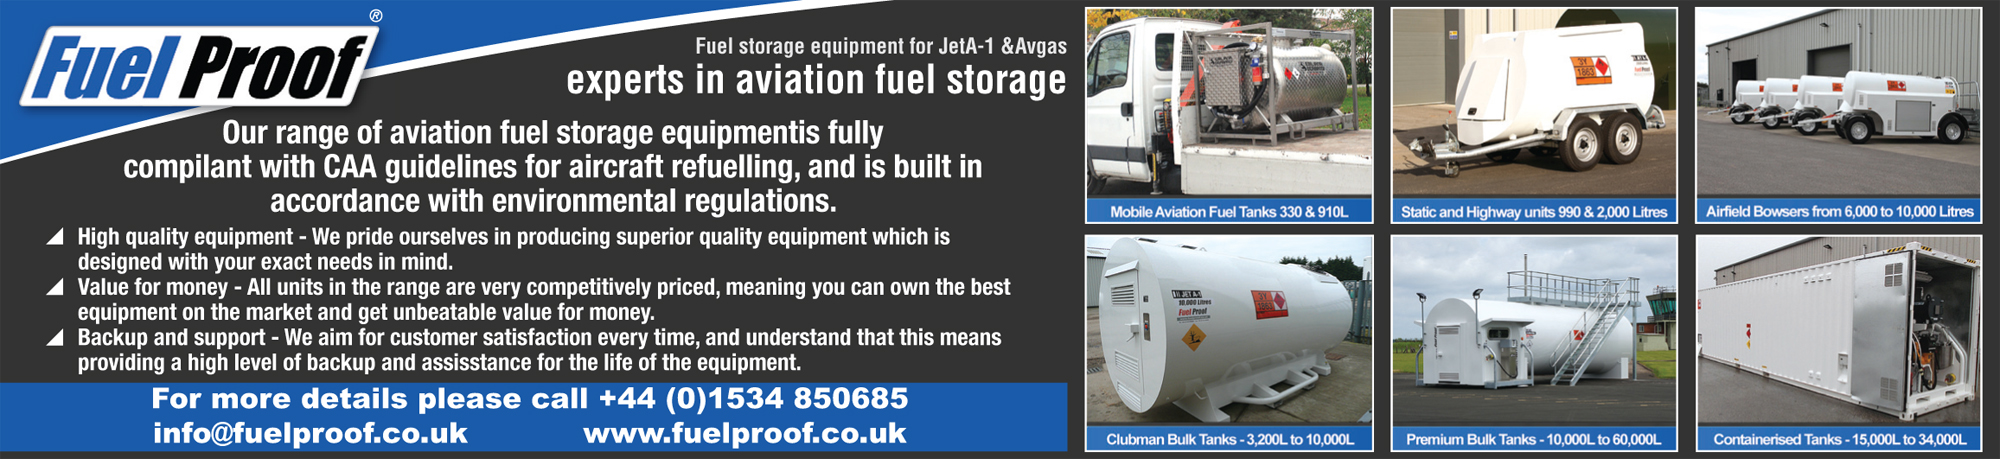 Fuel Proof fuel storage